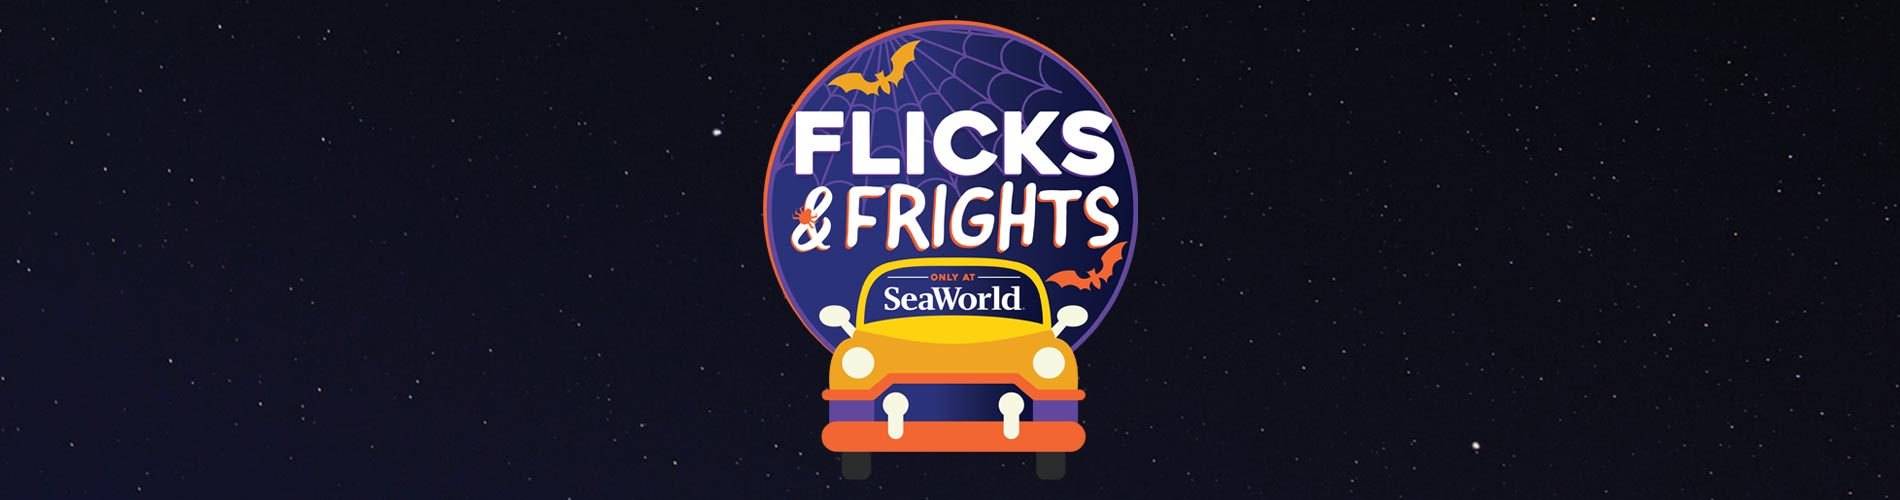 SeaWorld Orlando Flicks and Frights Drive-In Movie Event